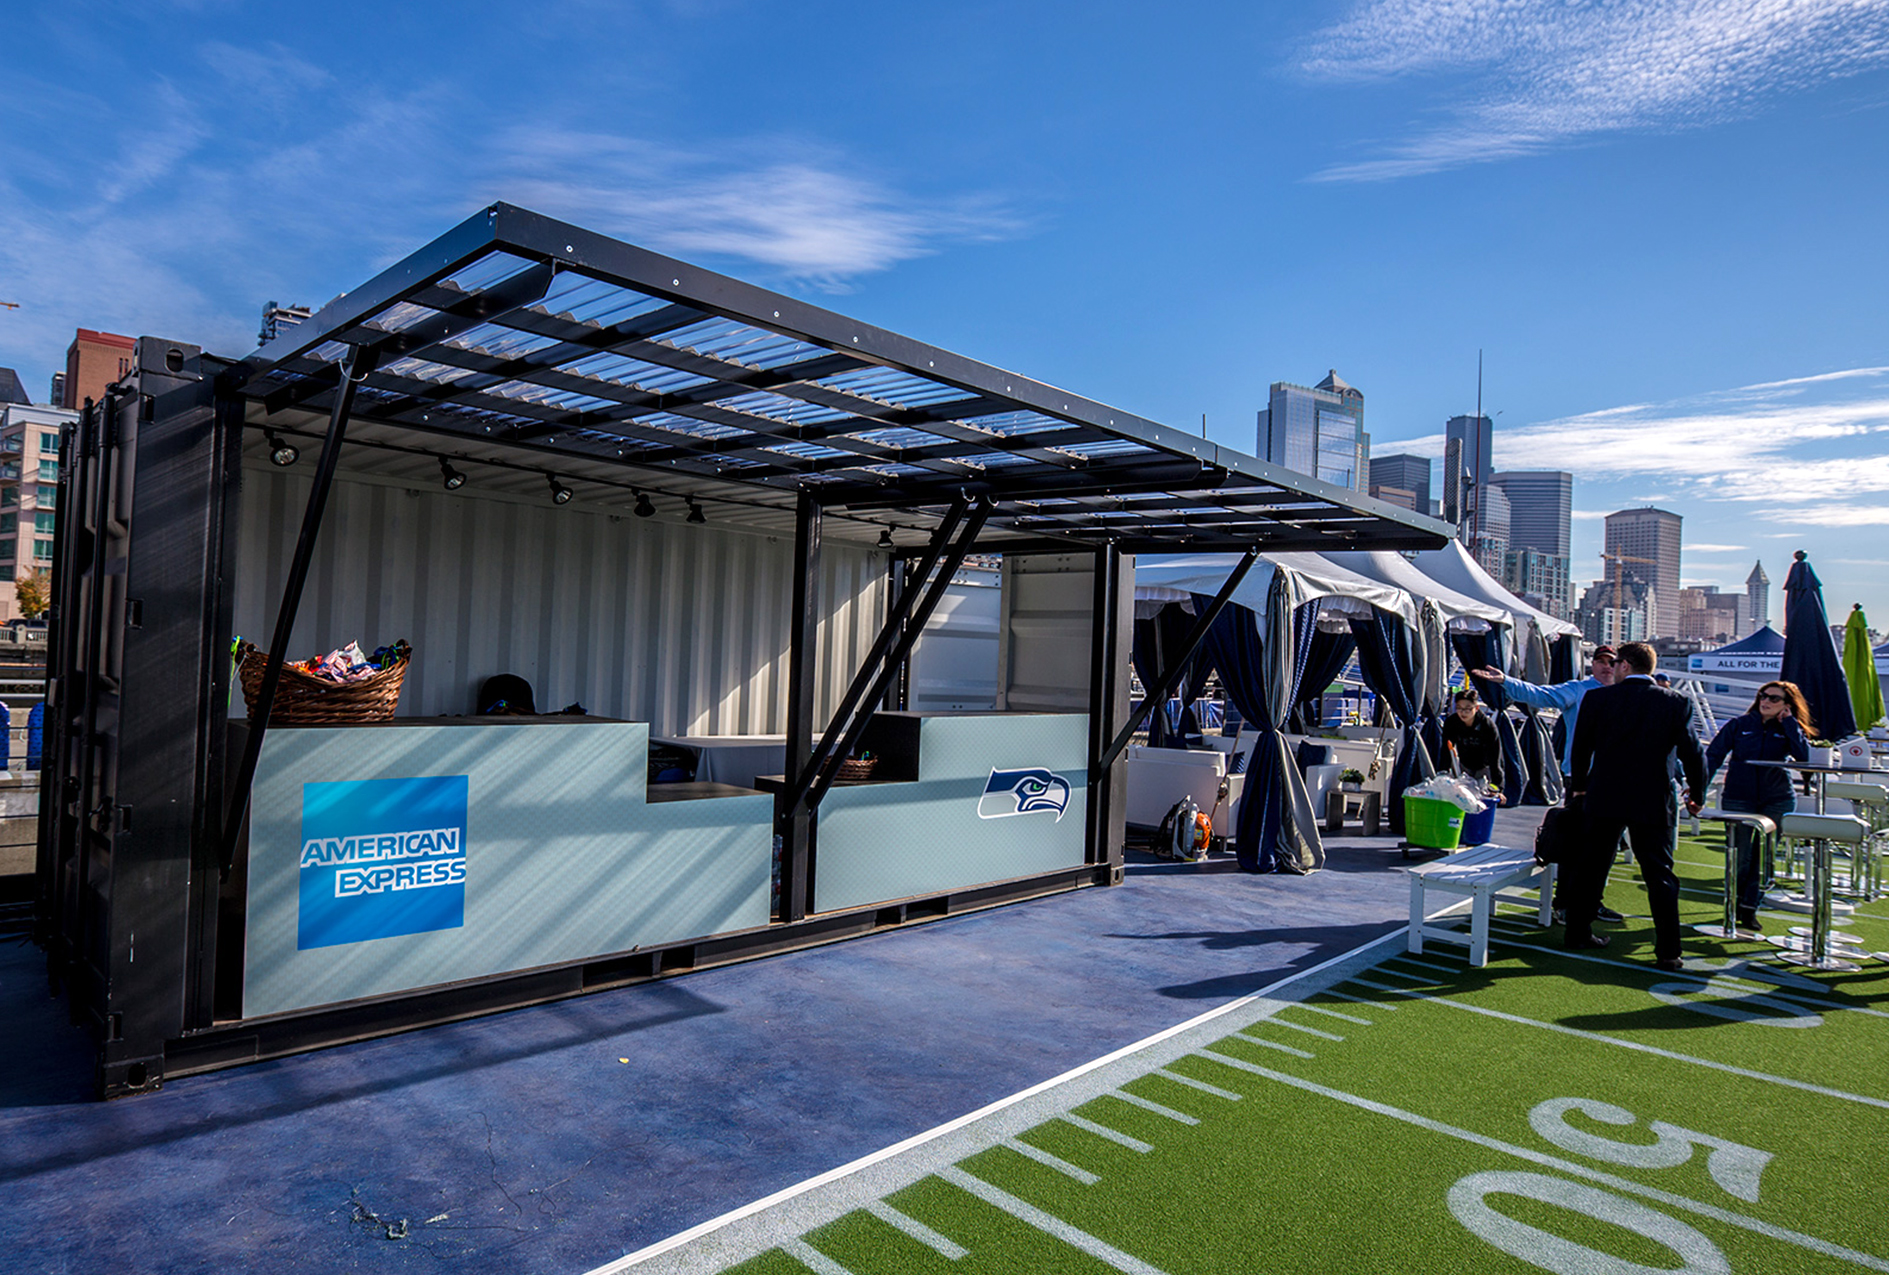 Momentum Worldwide reached out to ImagiCorps for strategic design, engineering, production and deployment support for the American Express Blue Friday event.